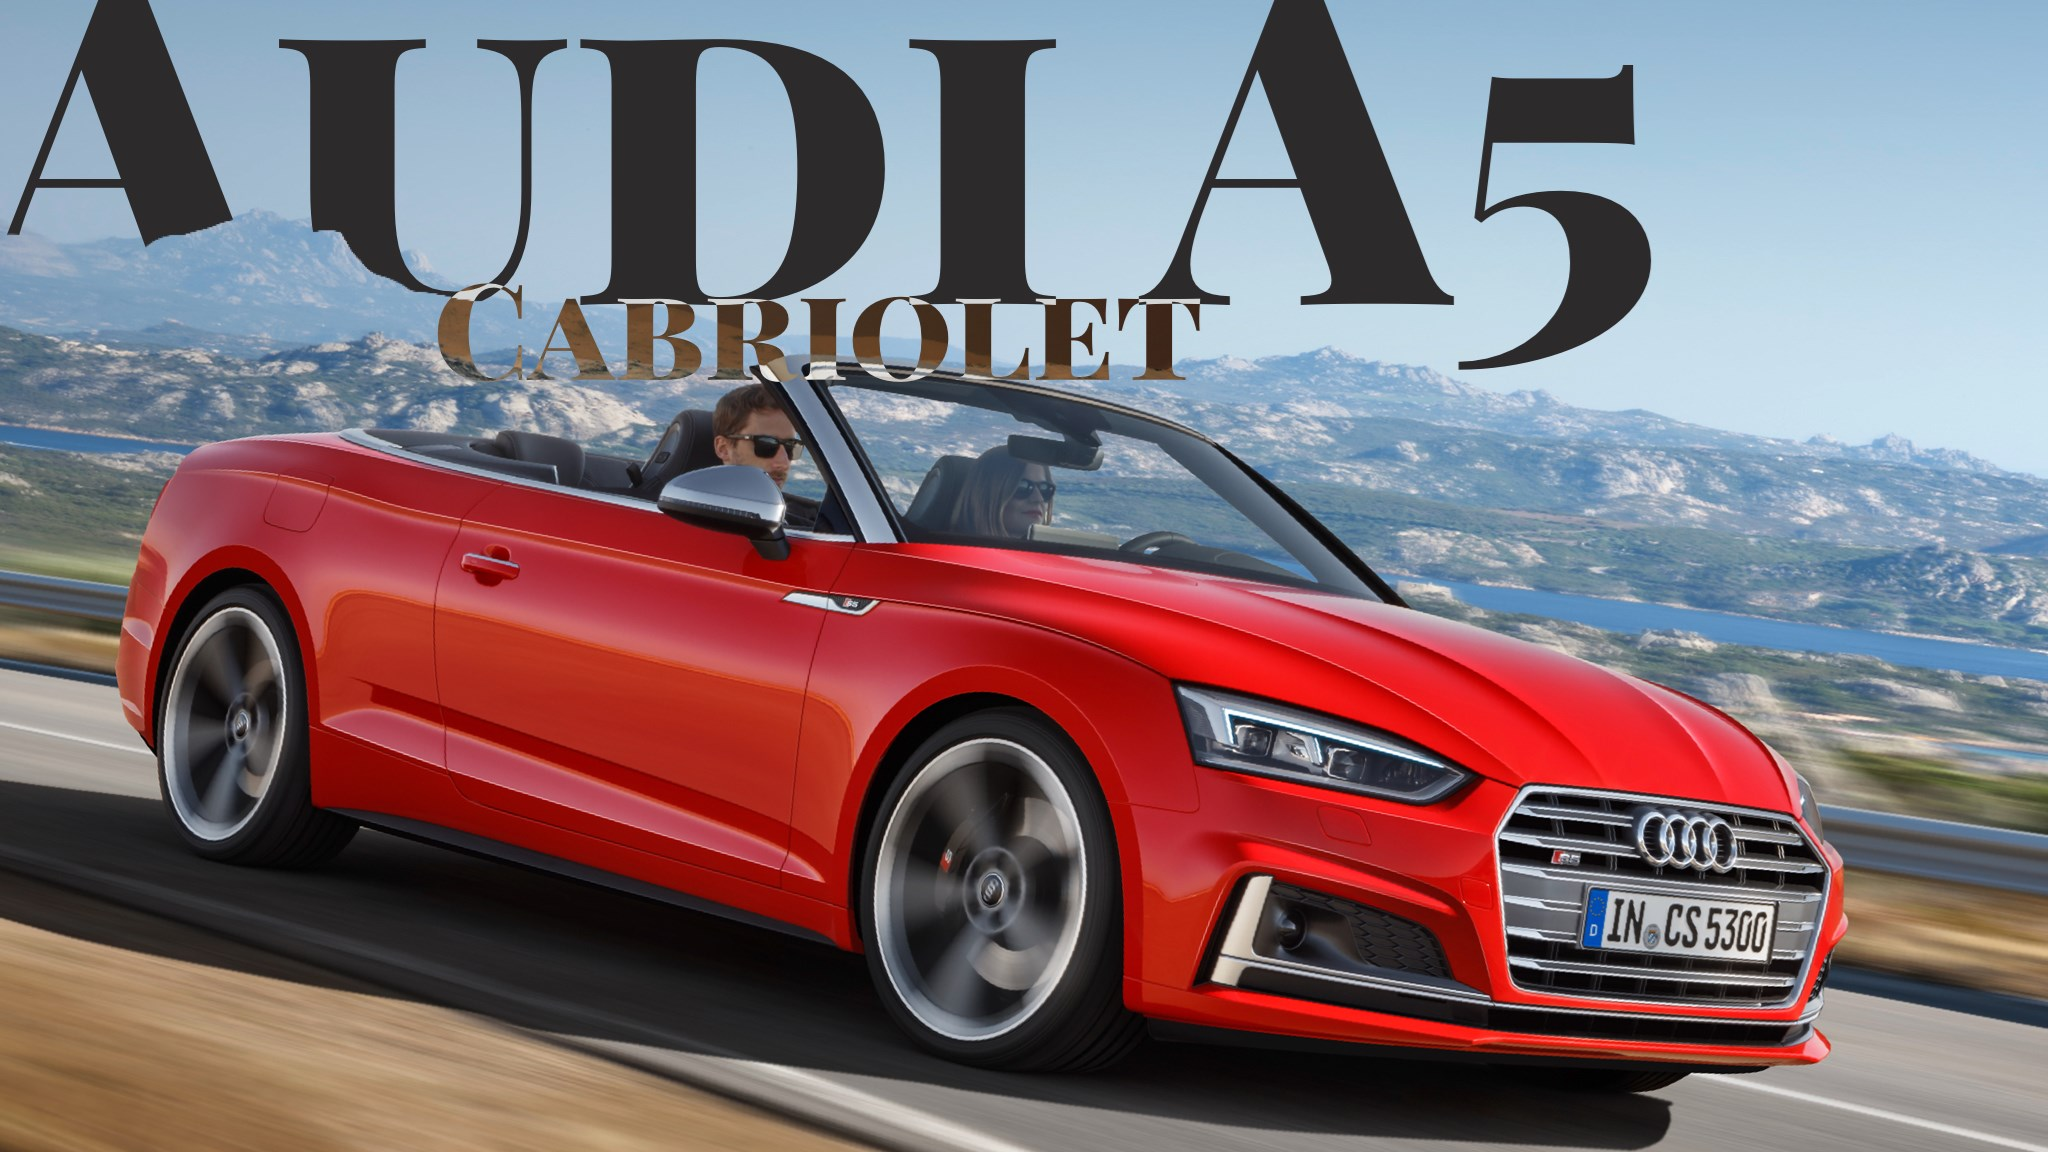 Audi Previews All-New A5 Cabriolet Ahead Of LA Auto Show